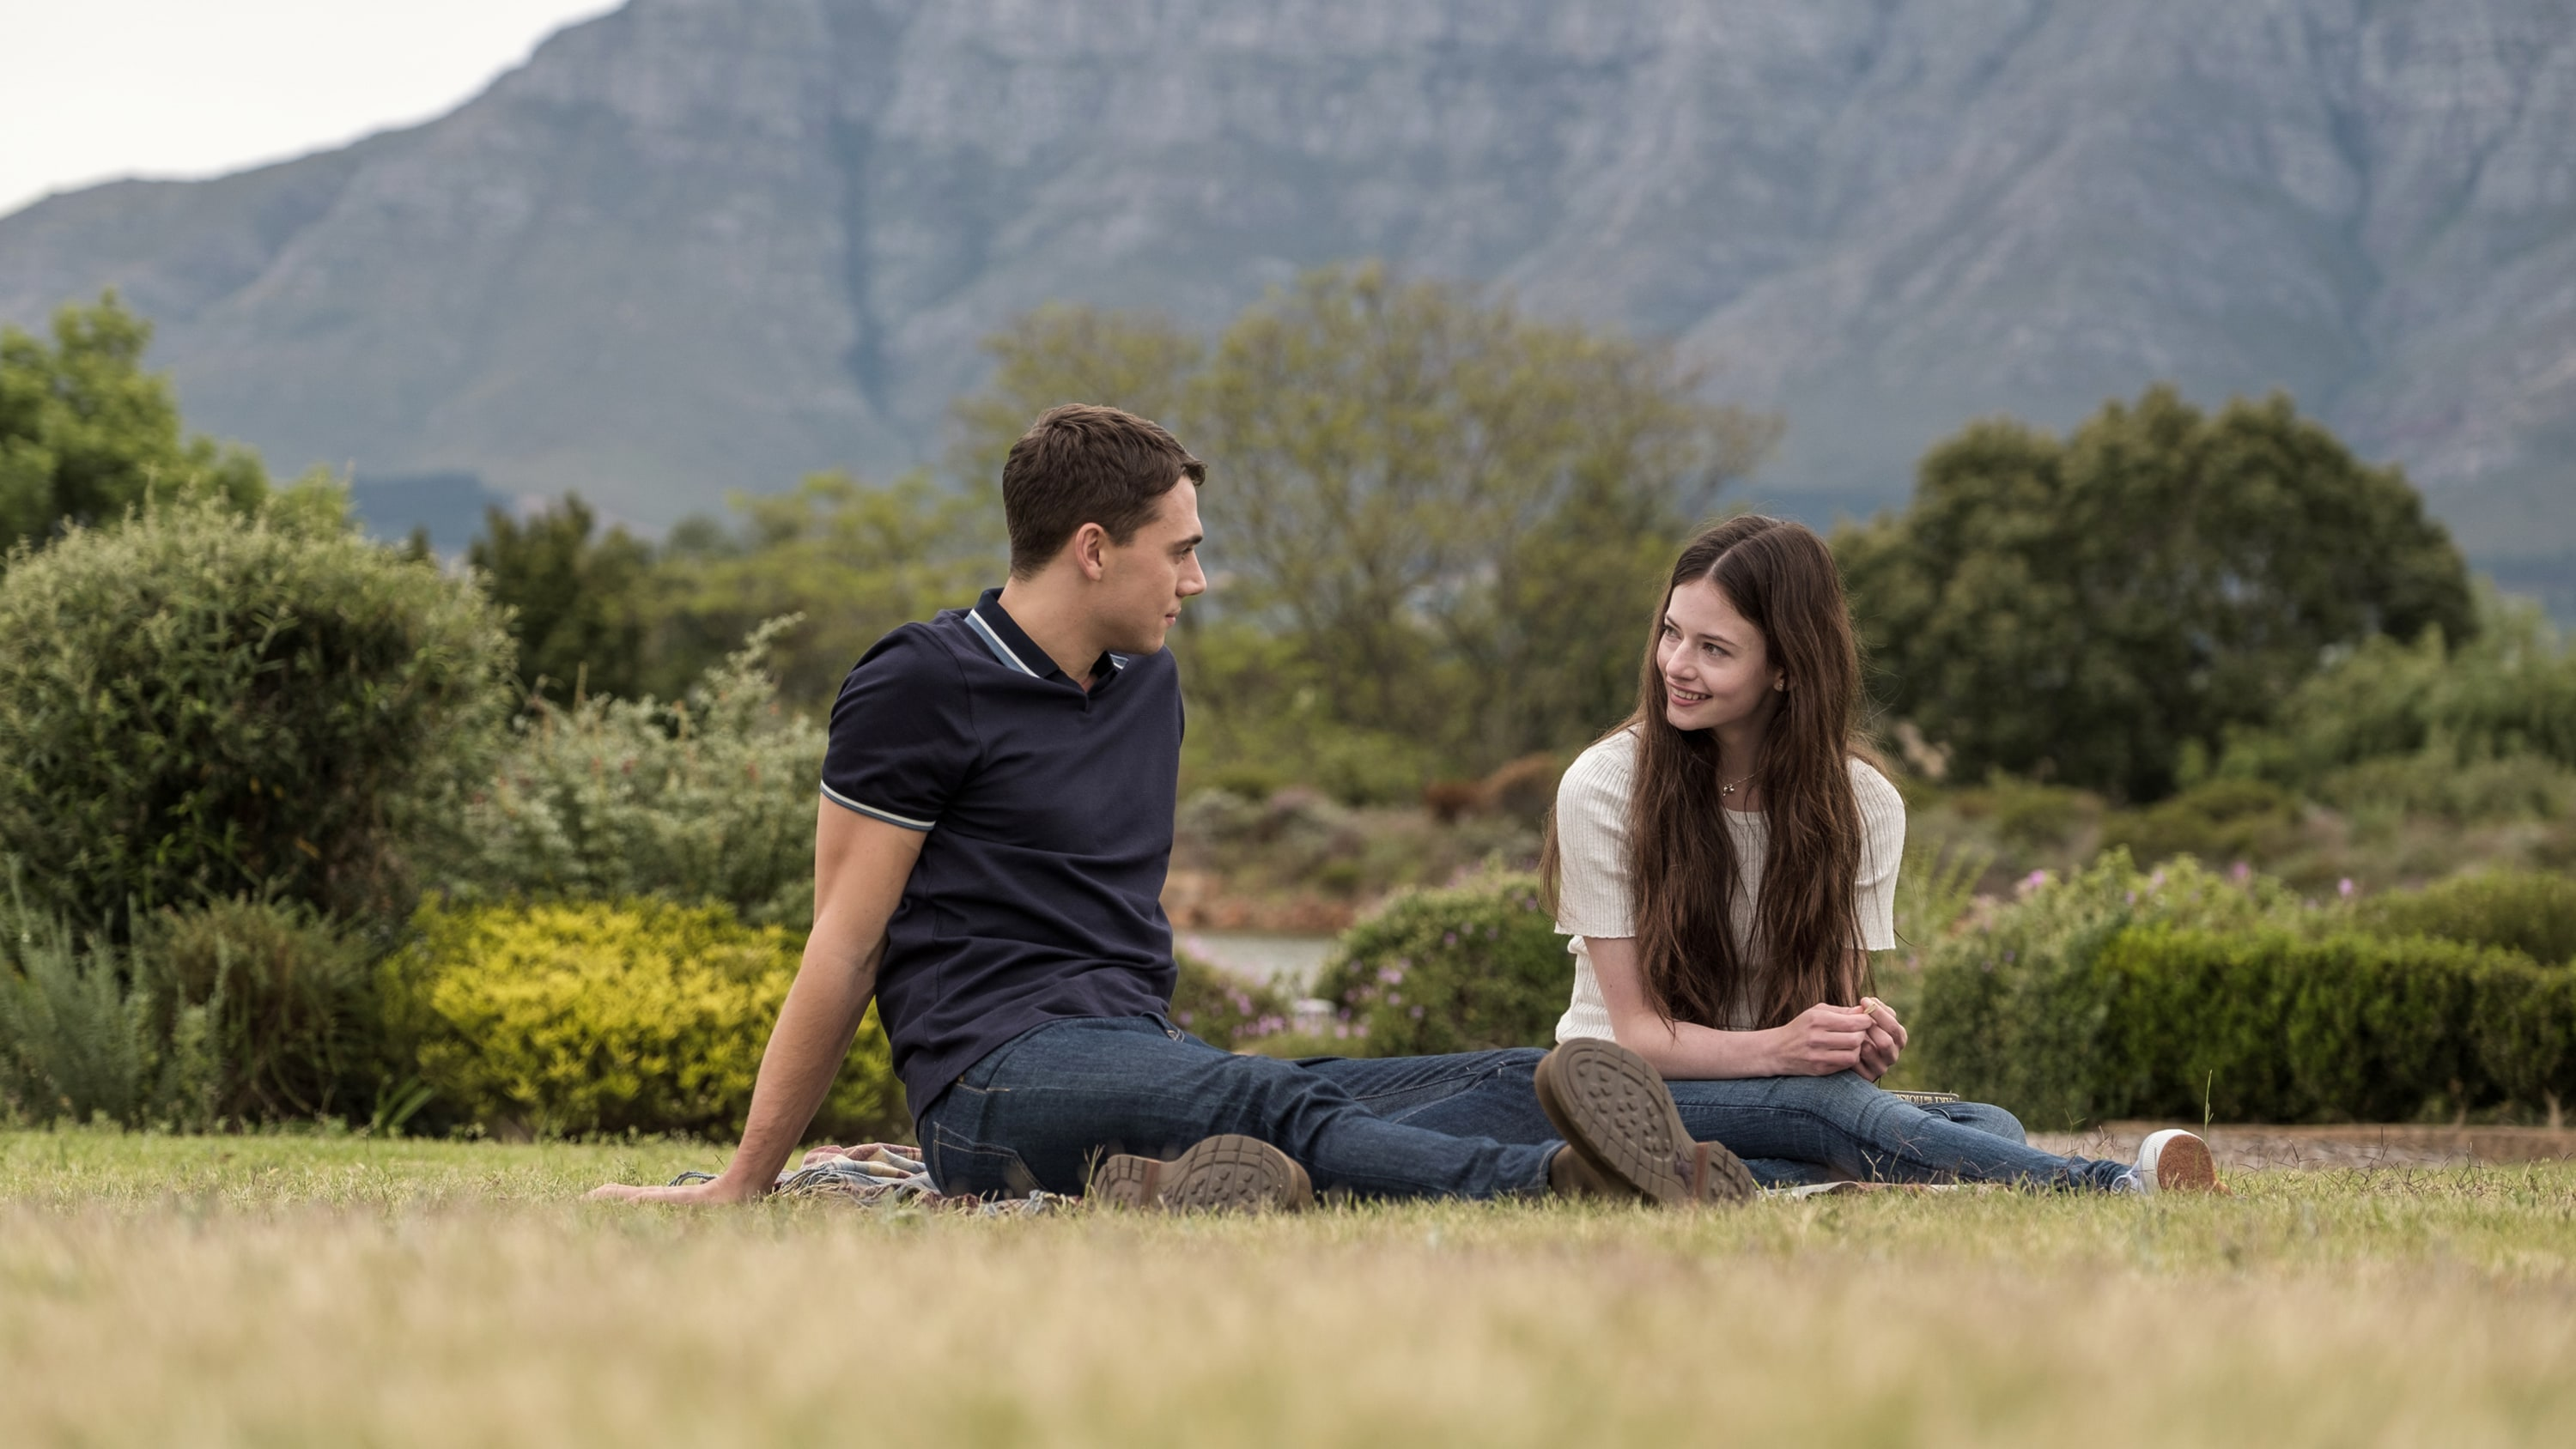 BLACK BEAUTY - A wild horse and a teenage girl forge an unbreakable bond which keeps them connected for a lifetime. (Disney/Graham Bartholomew) CALAM LYNCH, MACKENZIE FOY